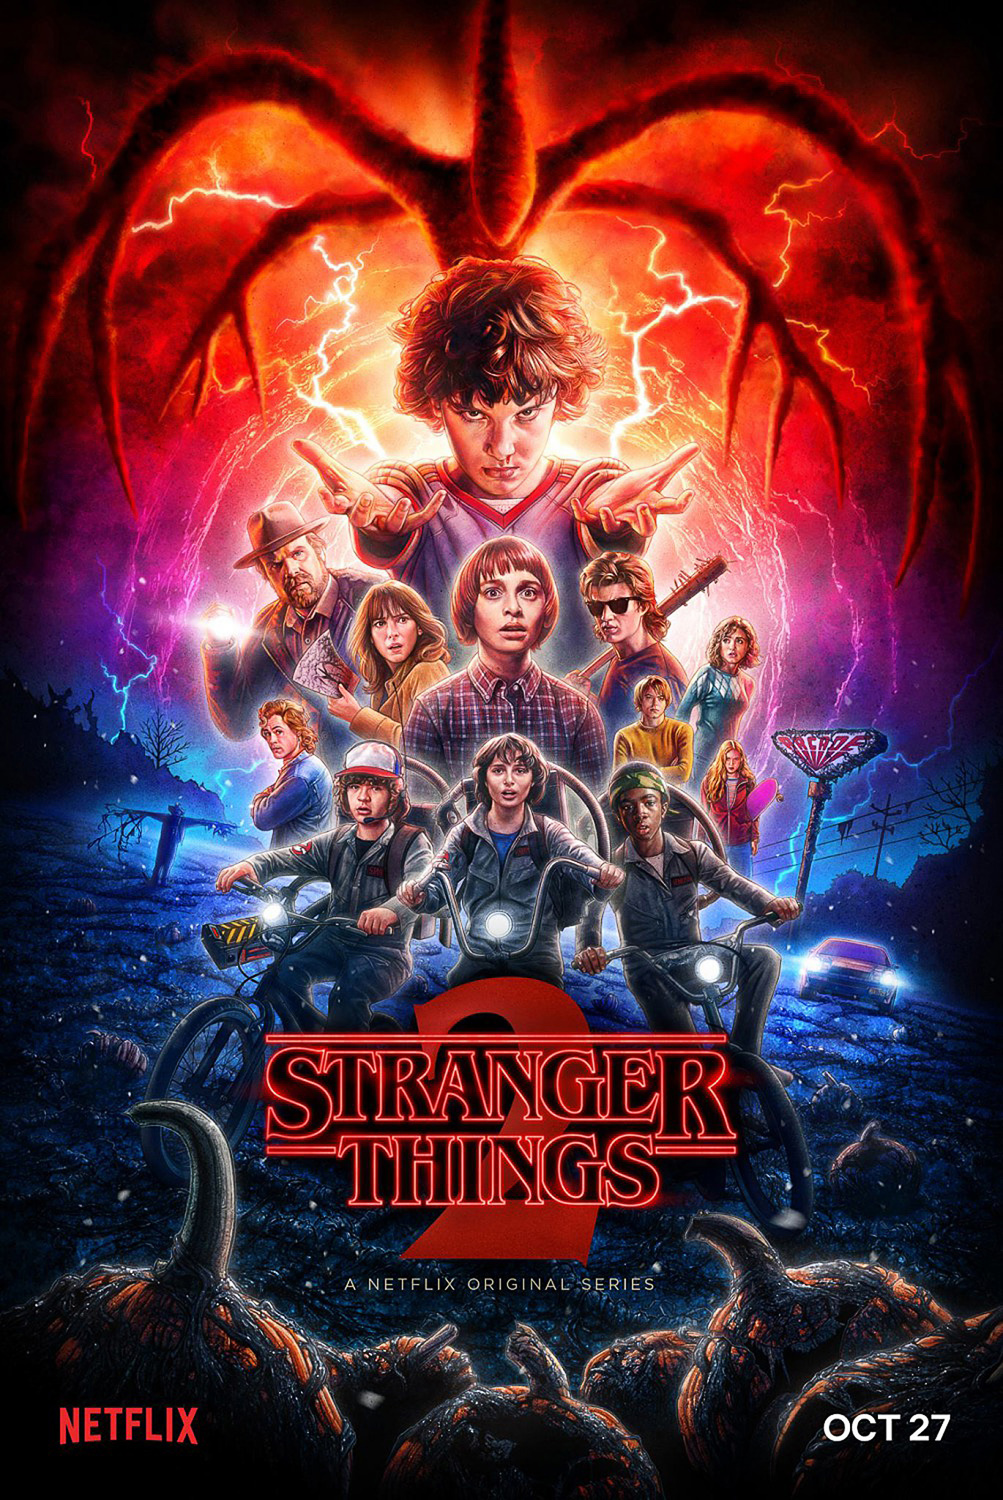 Image result for netflix stranger things 2